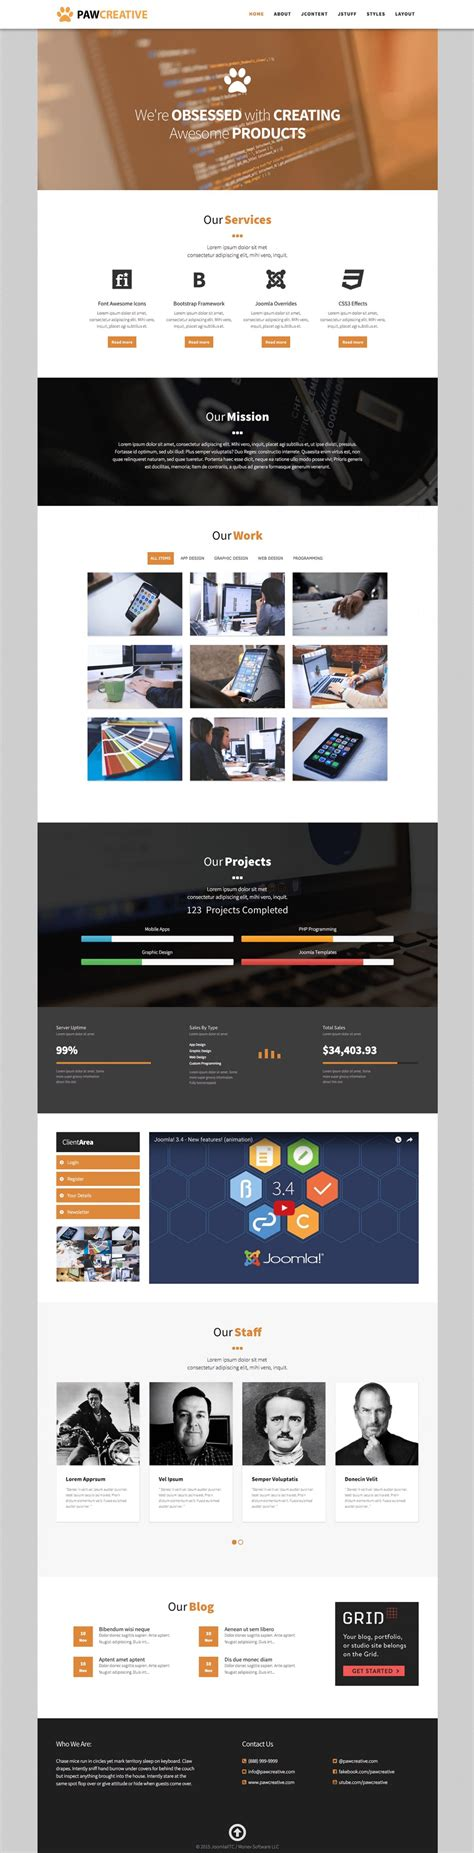 brochure joomla template for business and service providers